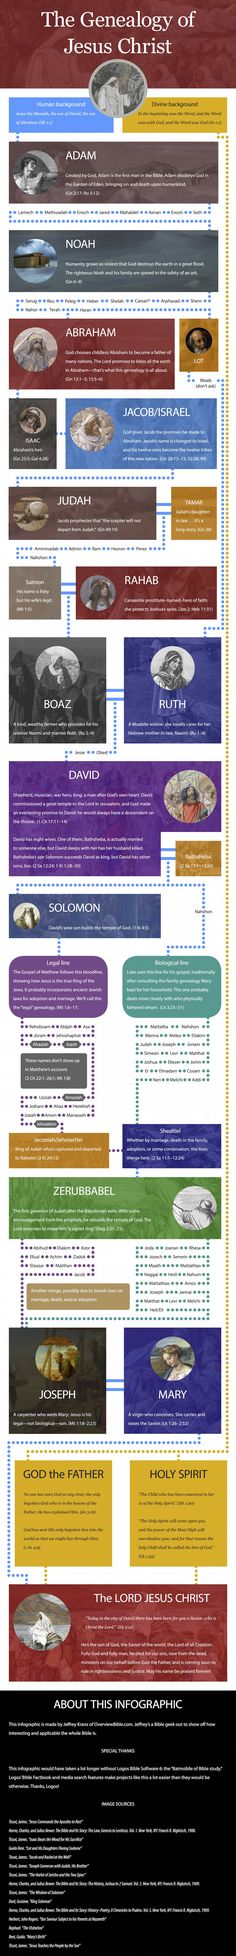 Genealogy of Jesus Infographic Zach J. Hoag